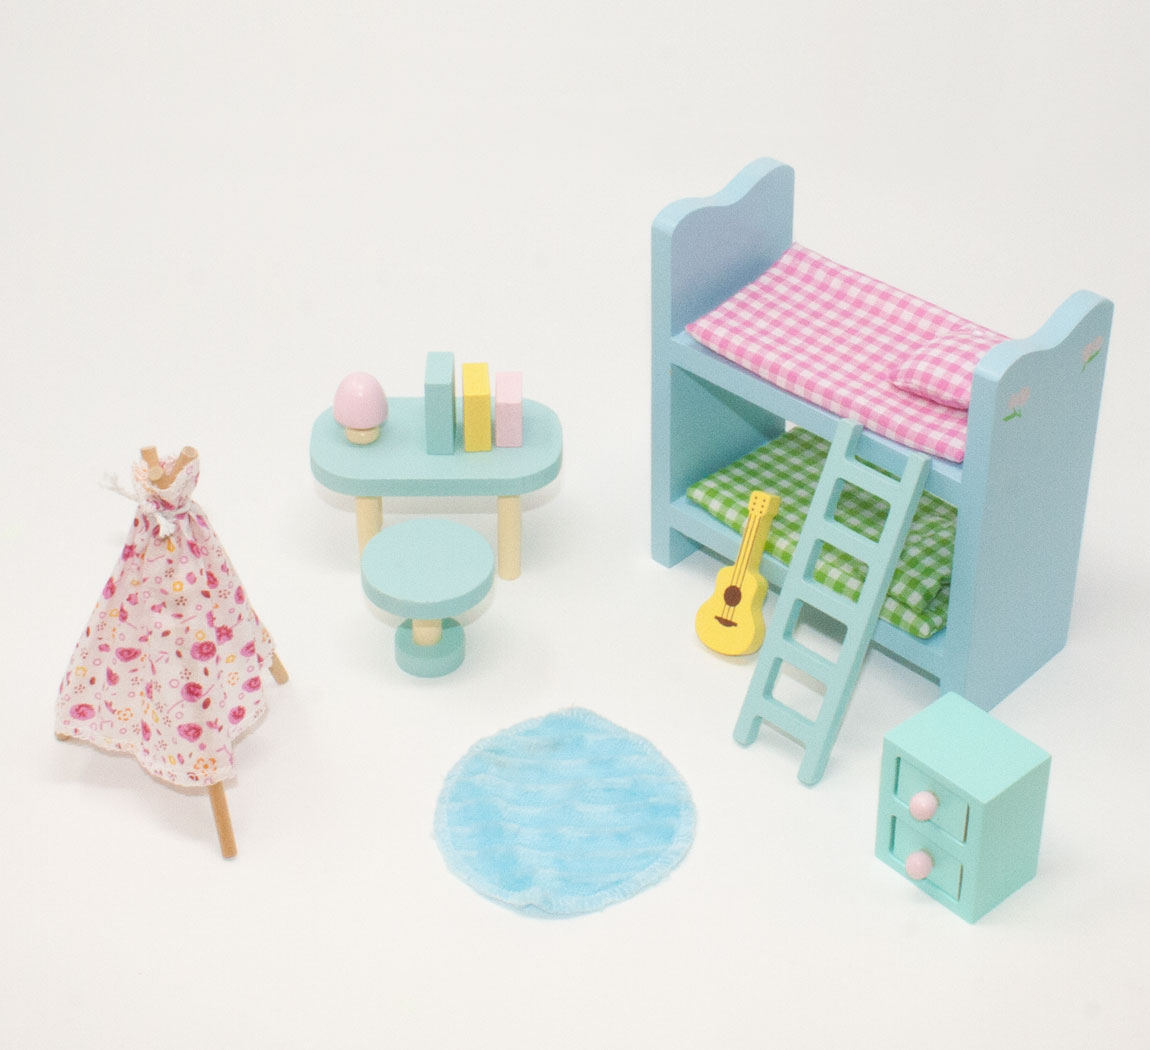 5 Sets of Sweetbee Dolls House Furniture